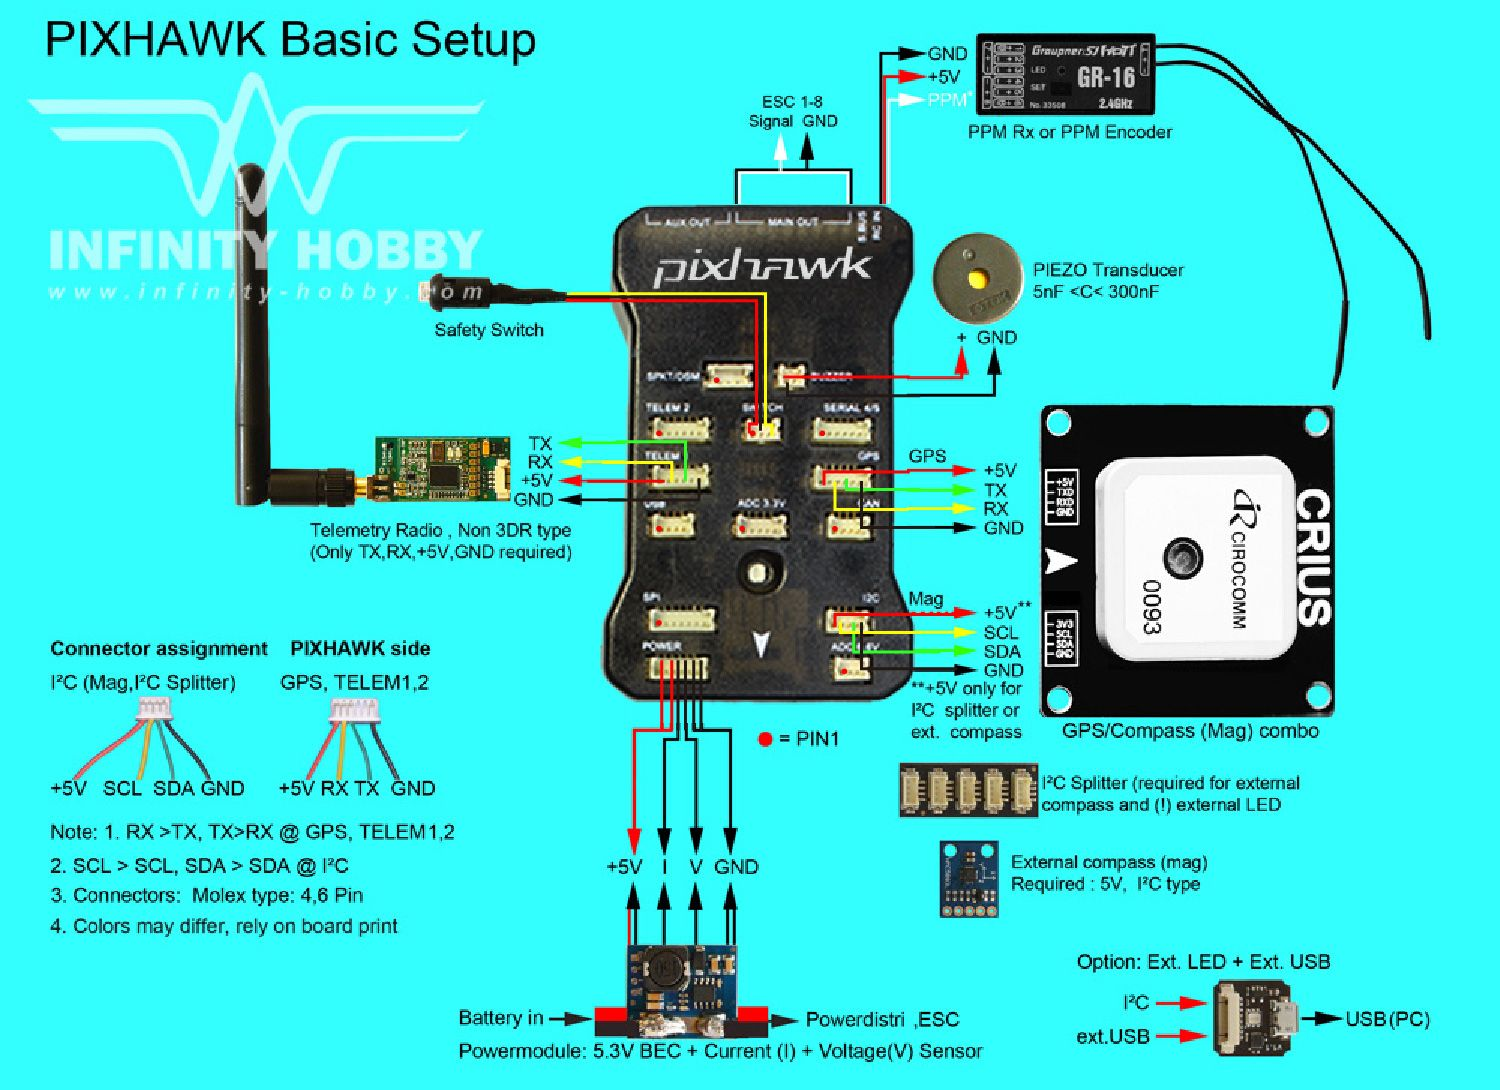 4l80e wiring schematic 6 5 mechanical diagram wiring naze32 rev 5 minimosd cable for fixhawk google search pixhawk #5